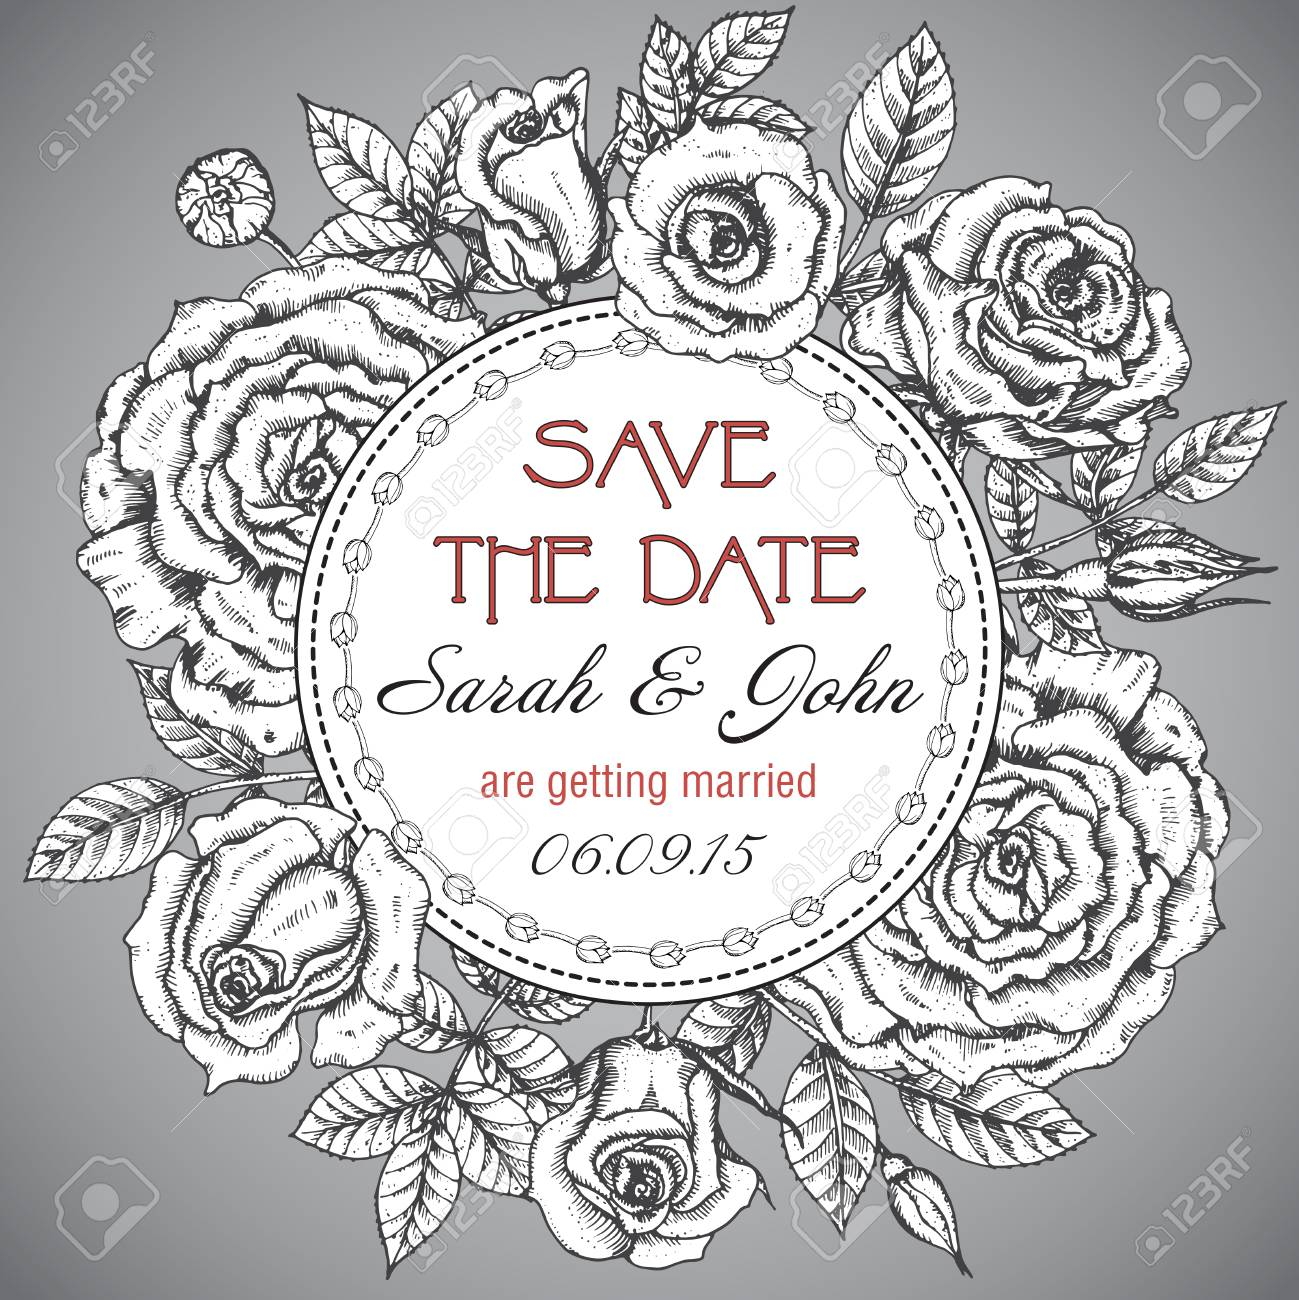 Vintage Elegant Wedding Invitation Or Card Save The Date With ...